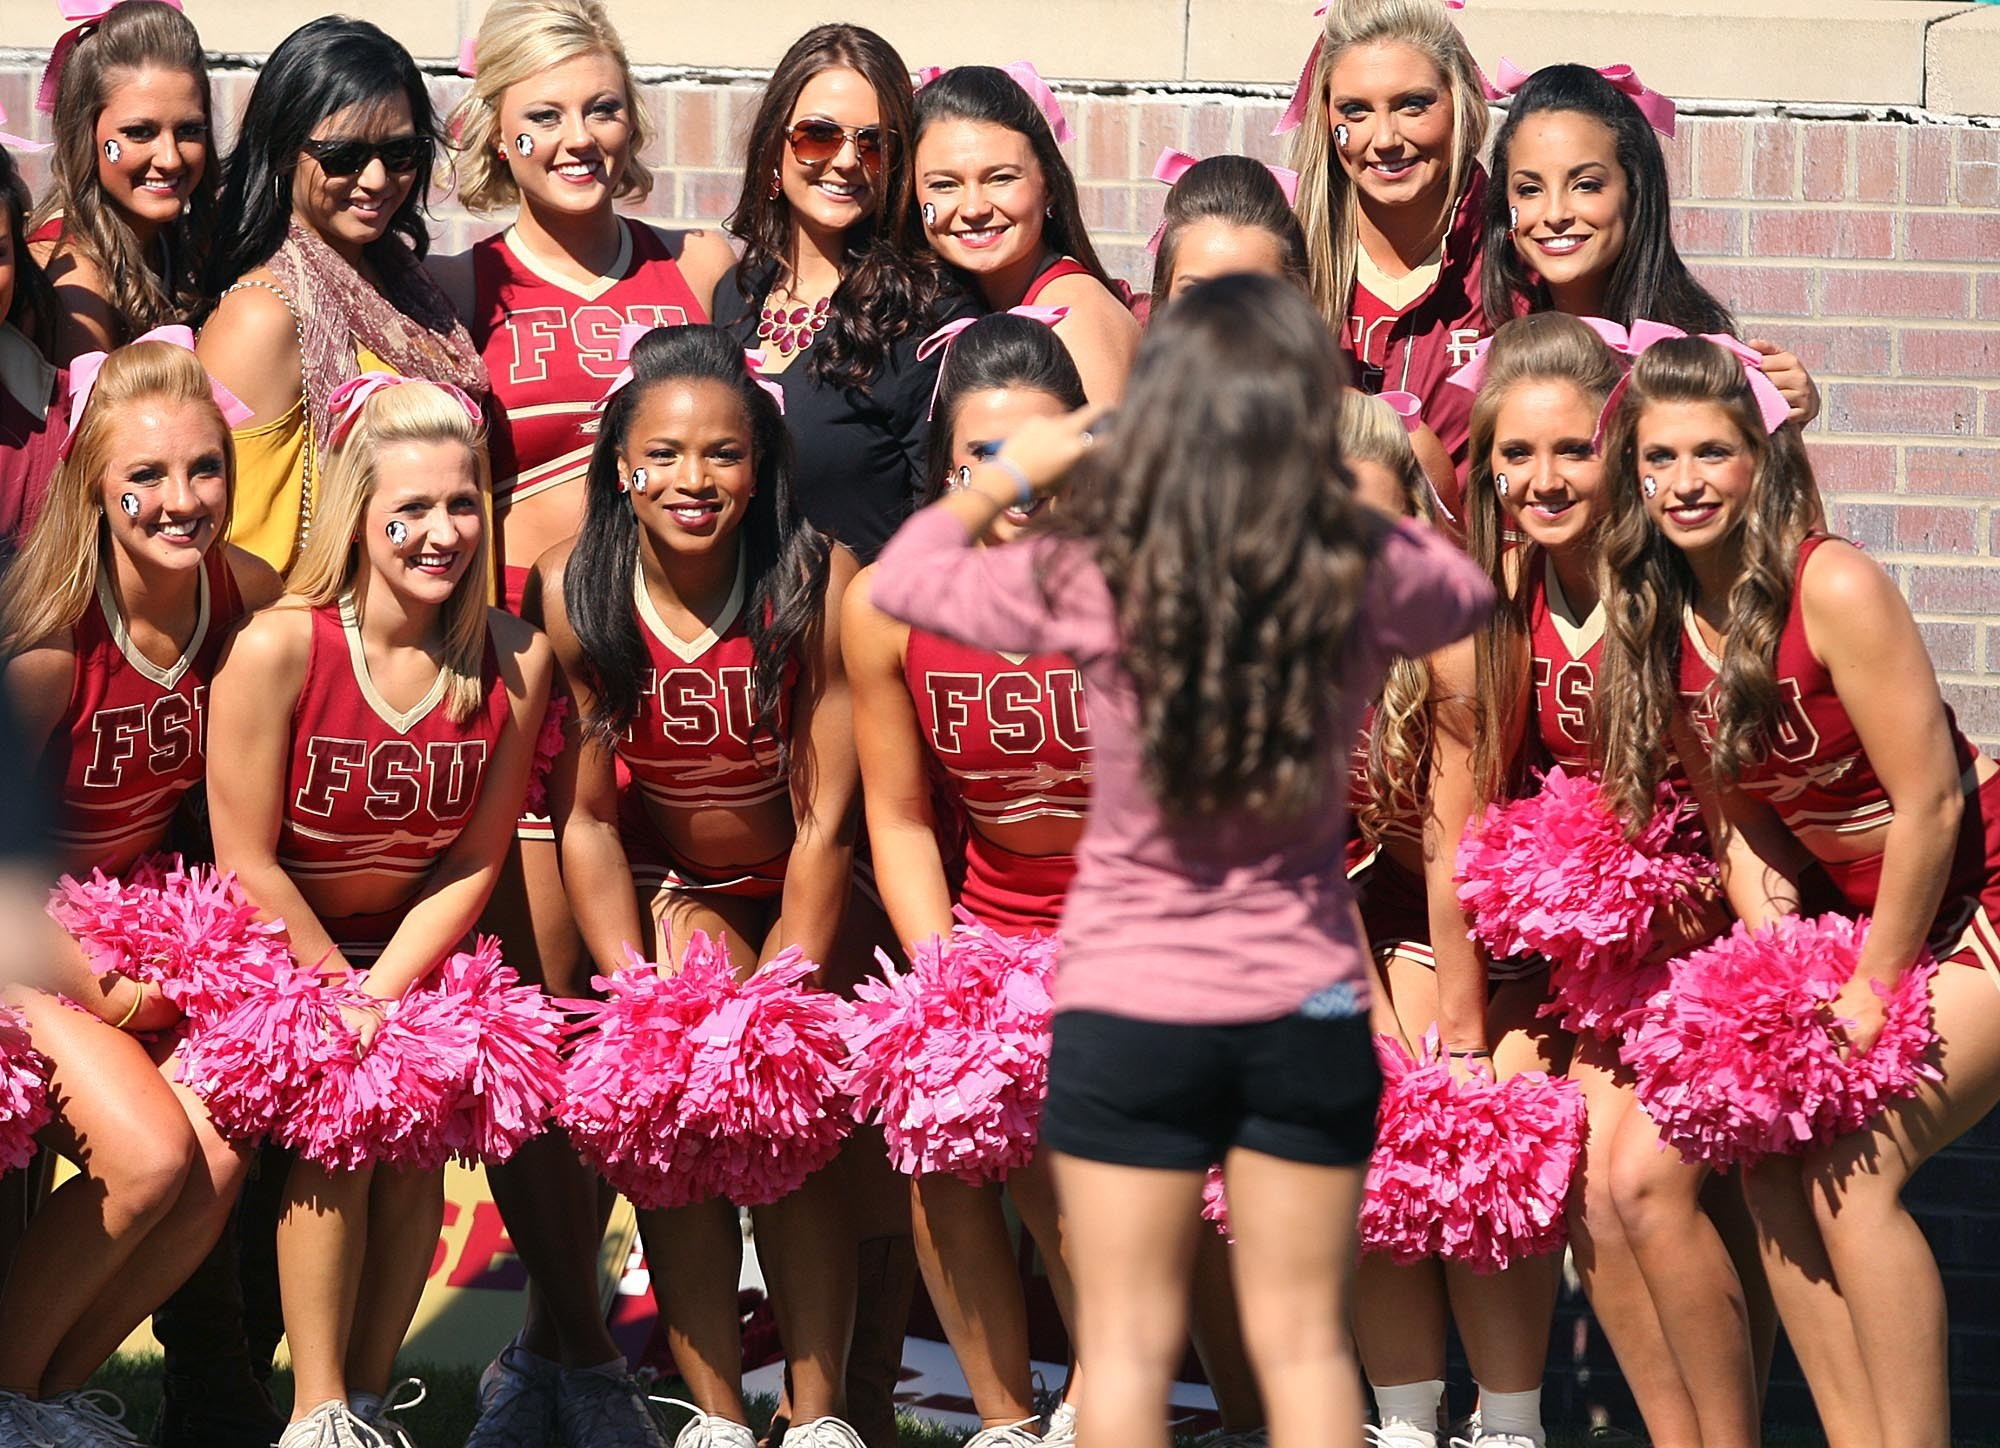 Photos: Florida State football fans and cheerleaders - FSU vs. North Carolina State